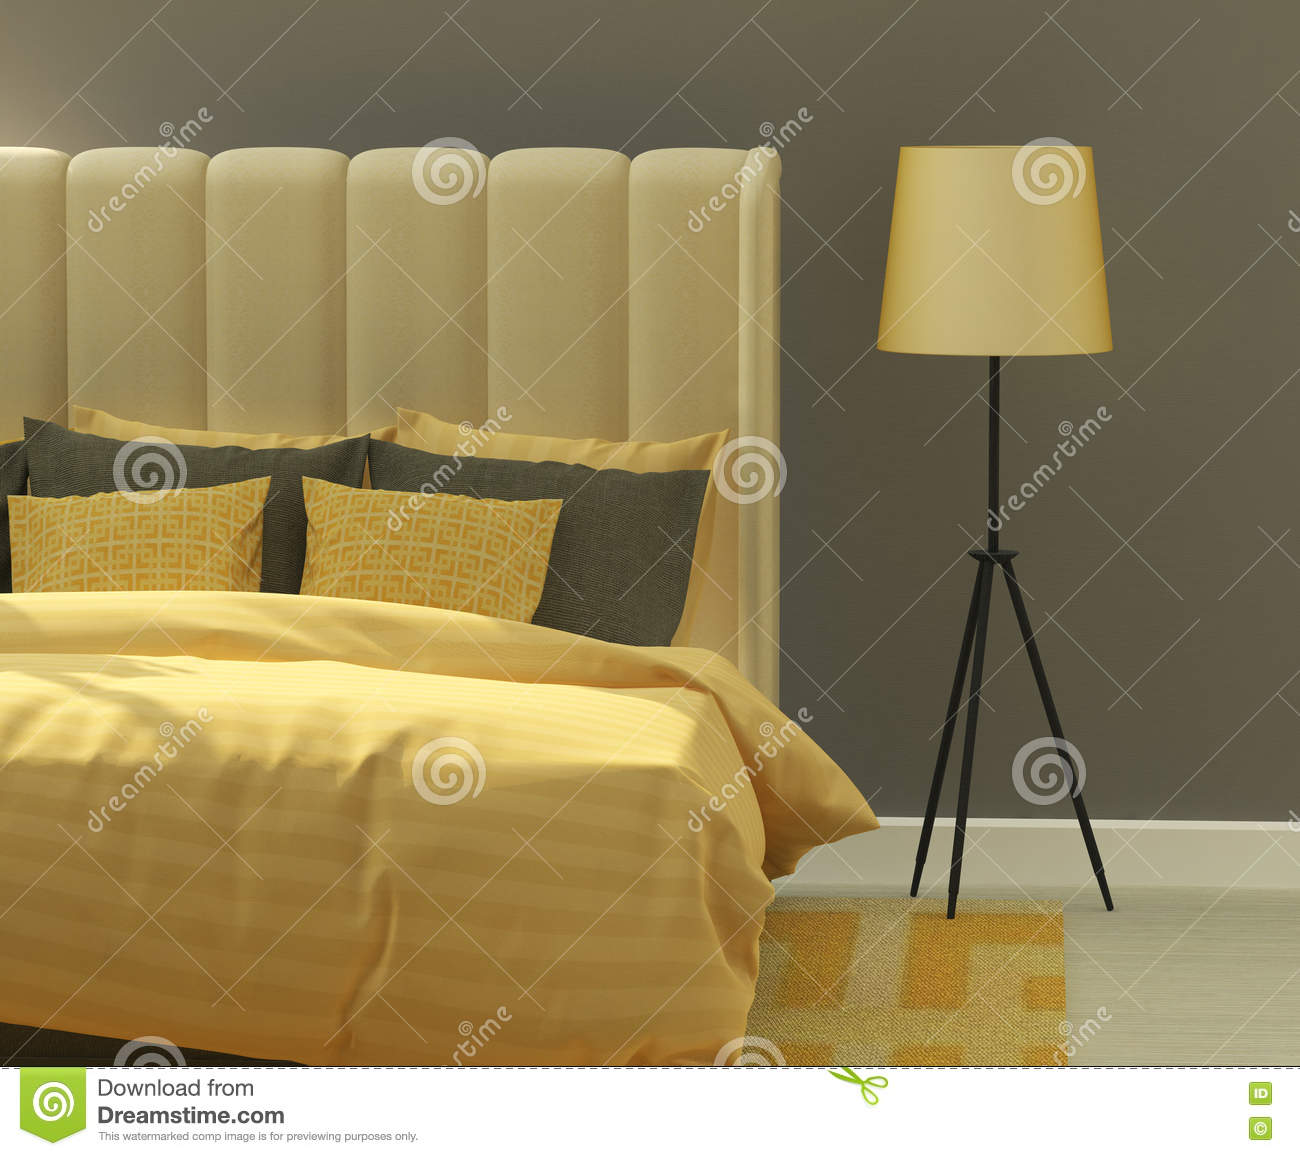 Yellow and gray bedroom stock image. Image of lounge - 74954129